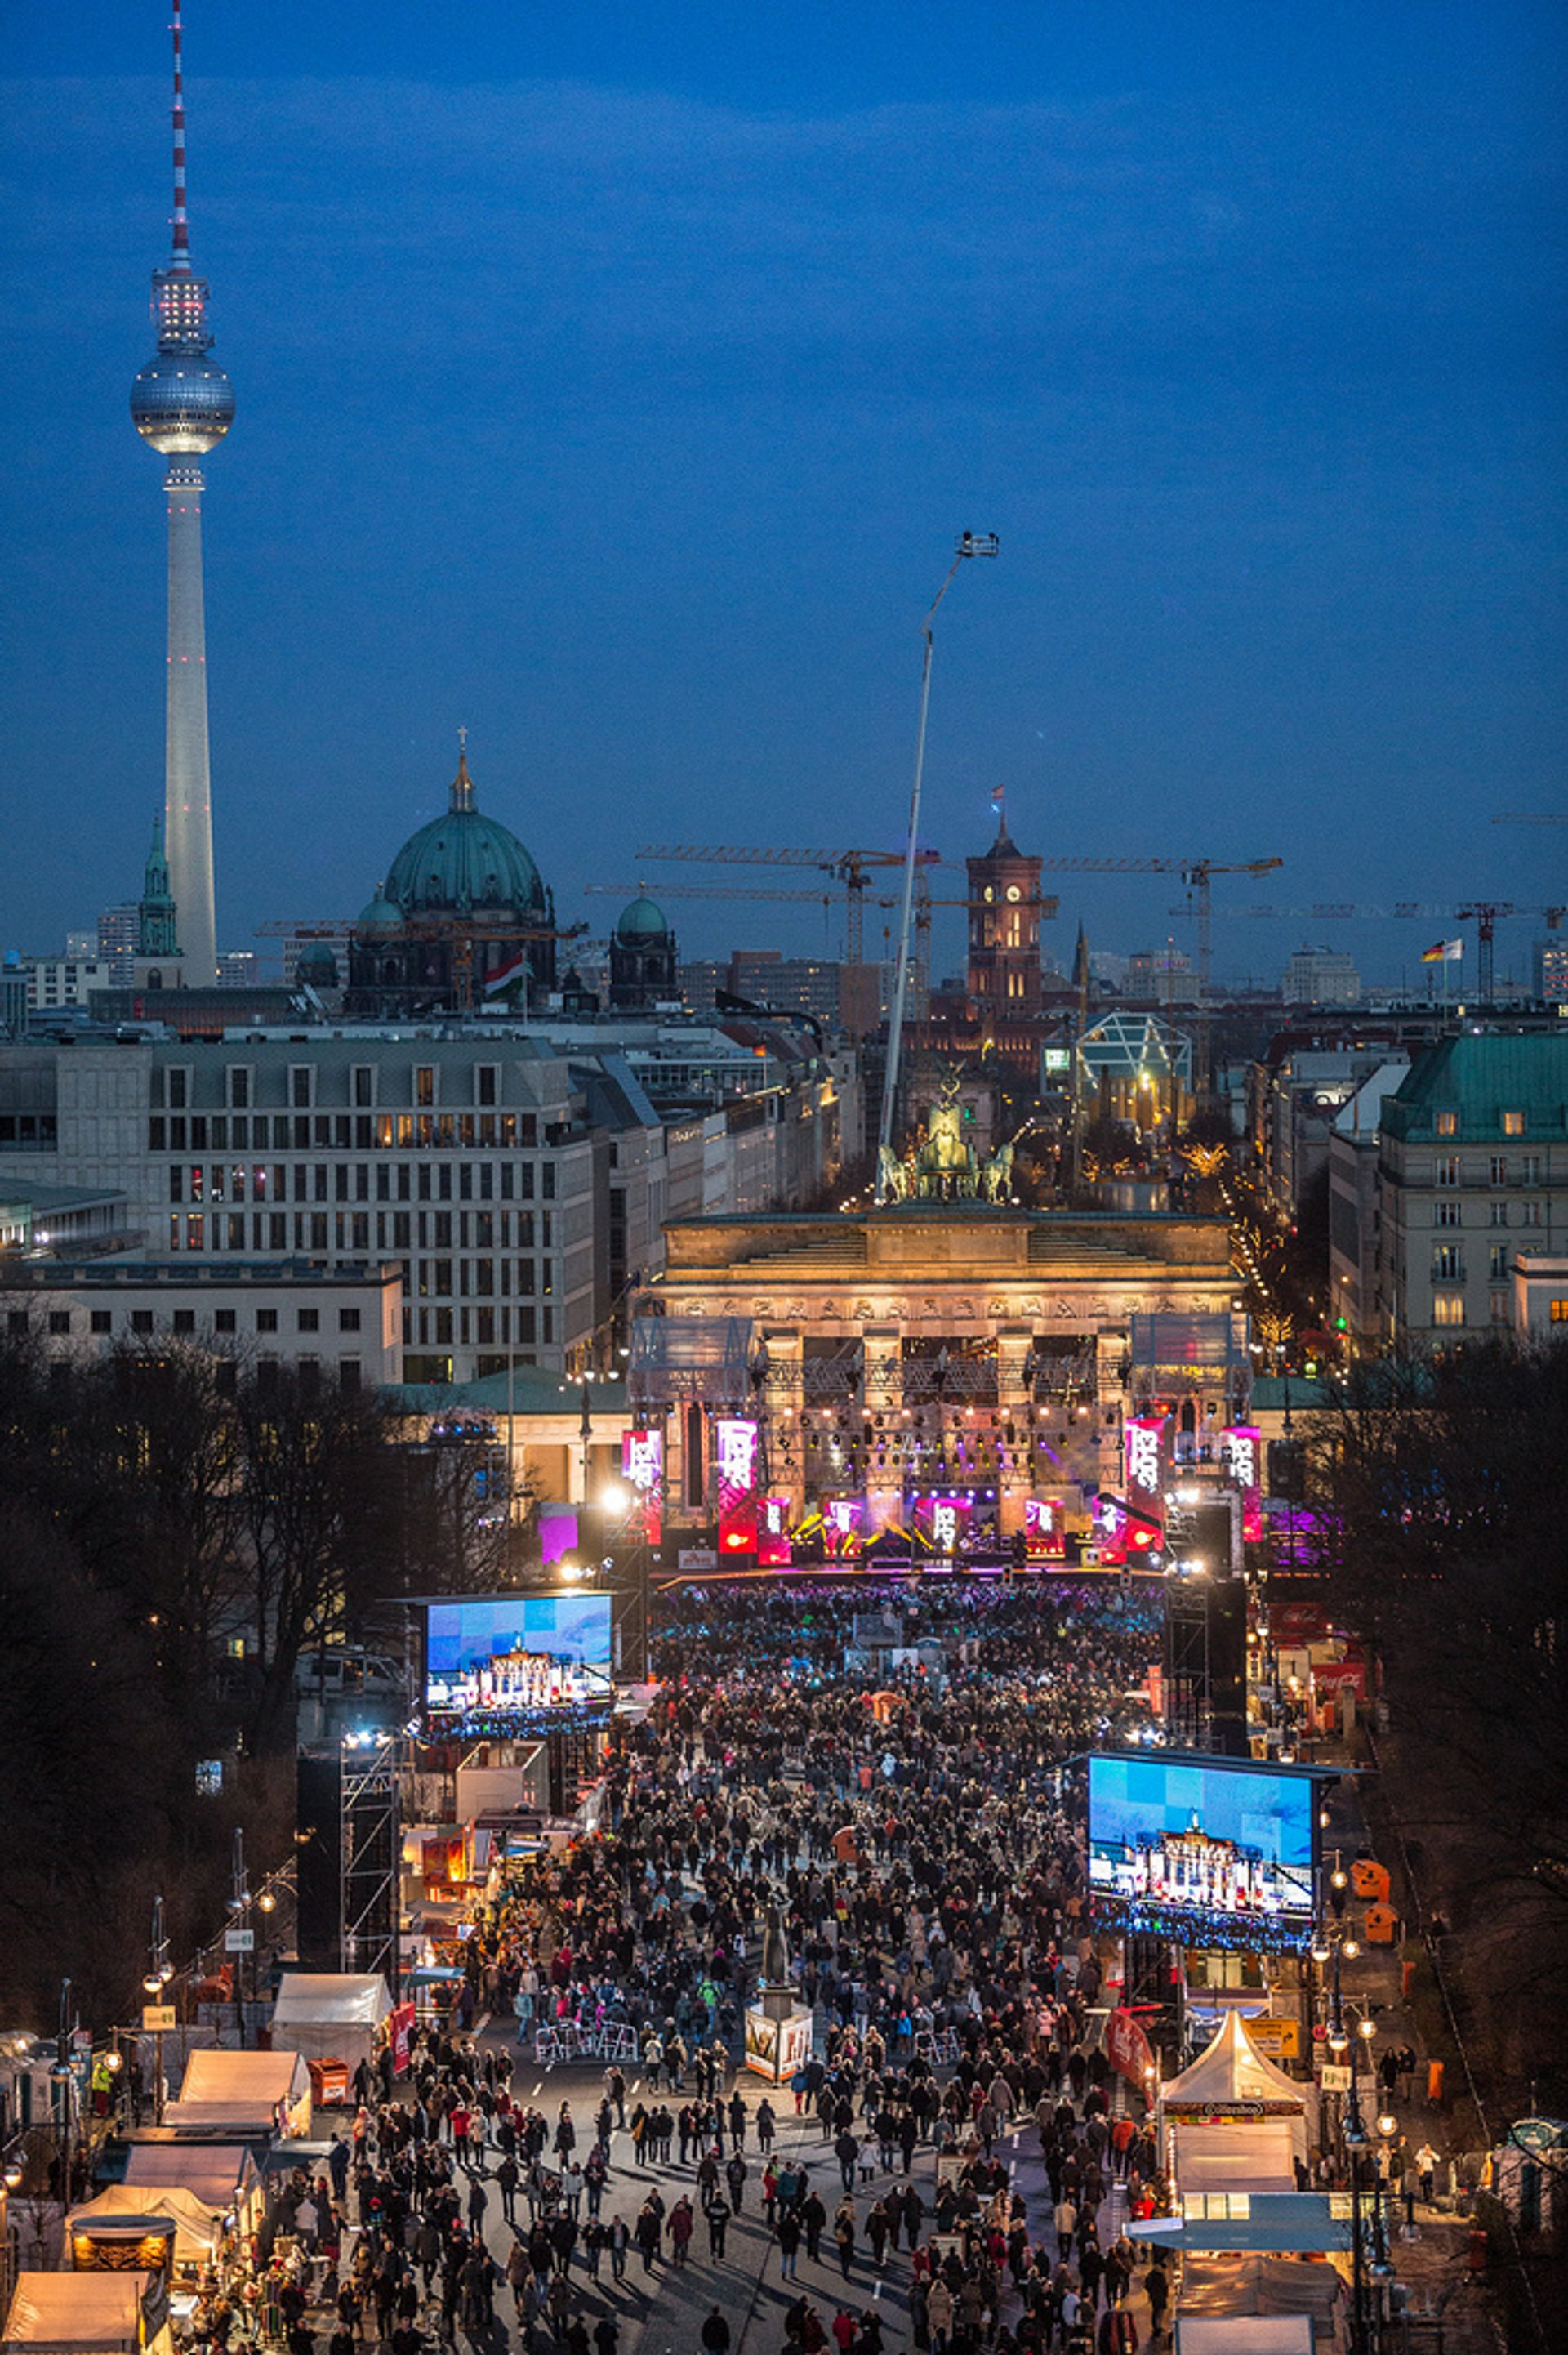 New Year's Eve at Brandenburg Gate 2020